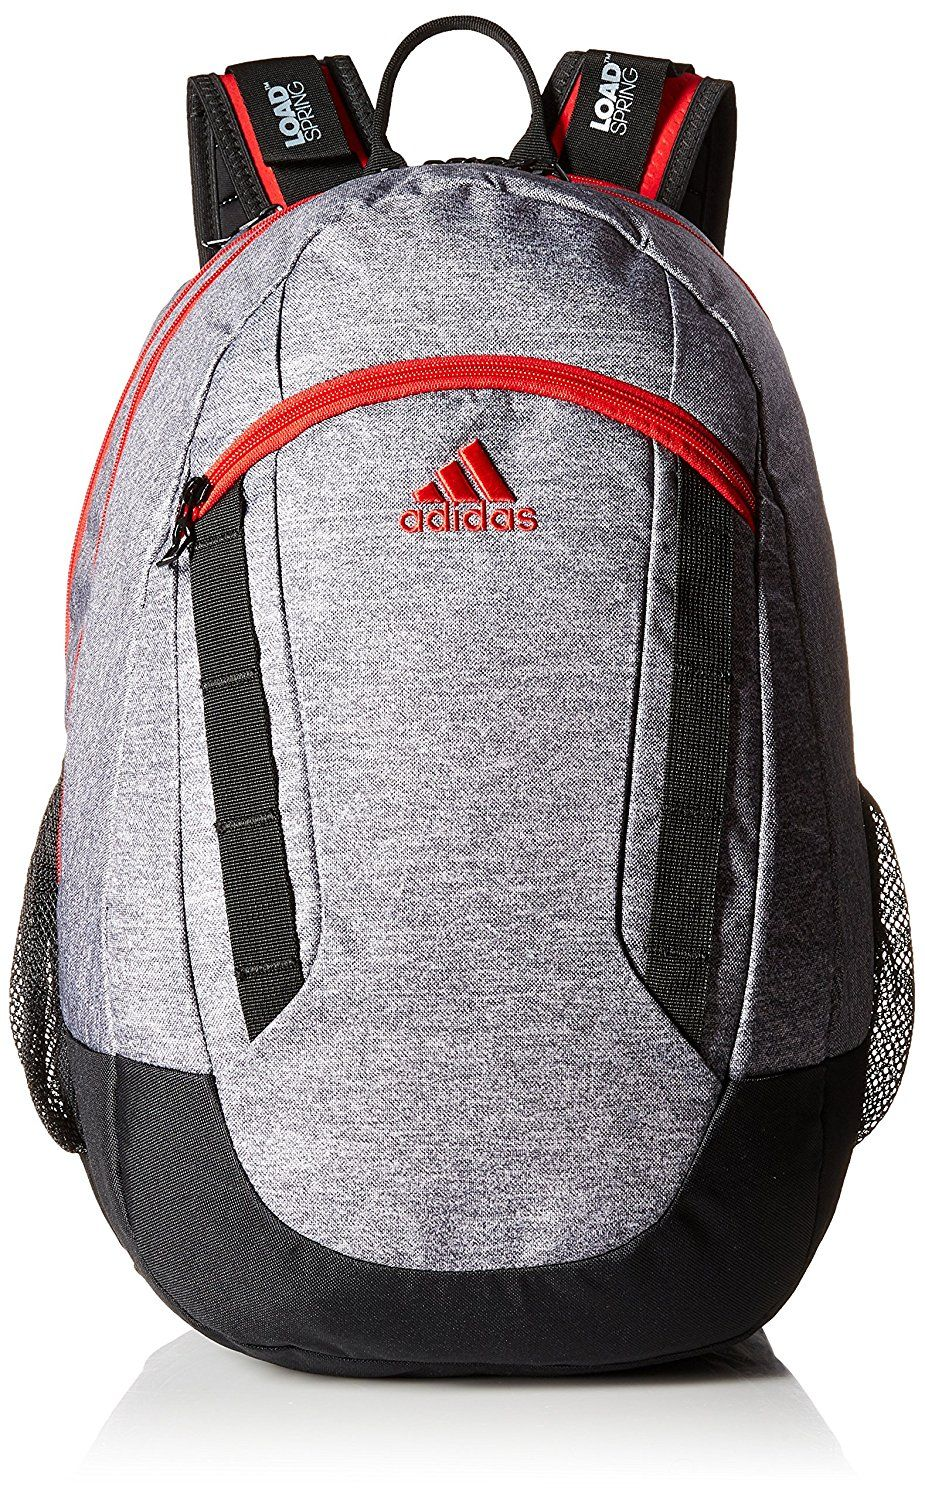 adidas Excel BackpackRoomy sport-inspired backpack with four zipper compartments and padded air mesh back for comfortLined 15.4 laptop/tablet sleeveTw